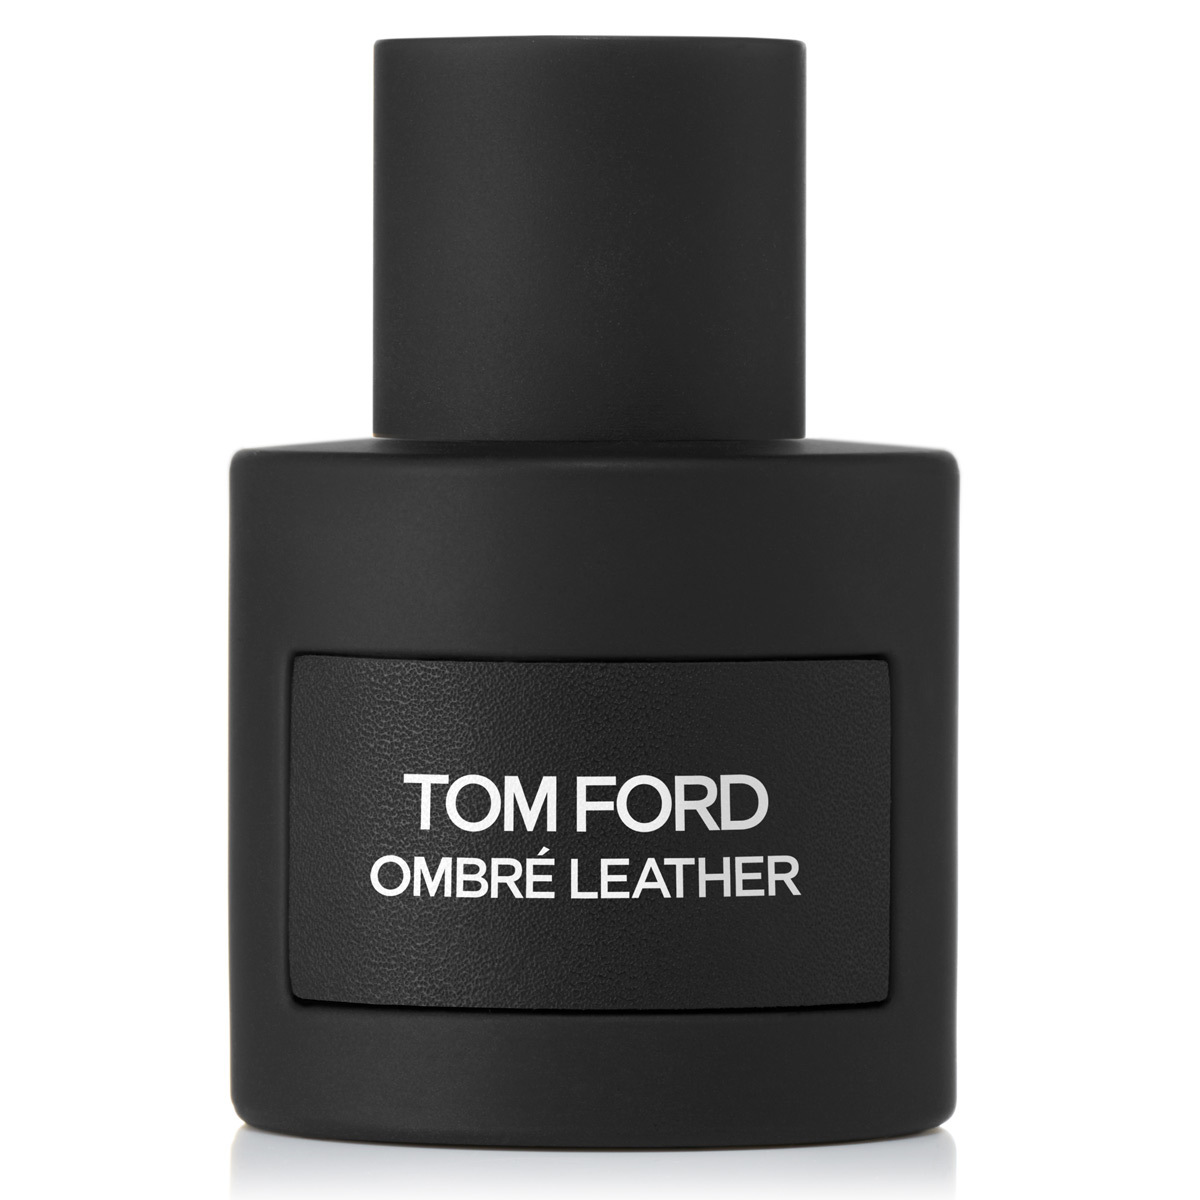 Ombré Leather de Tom Ford.